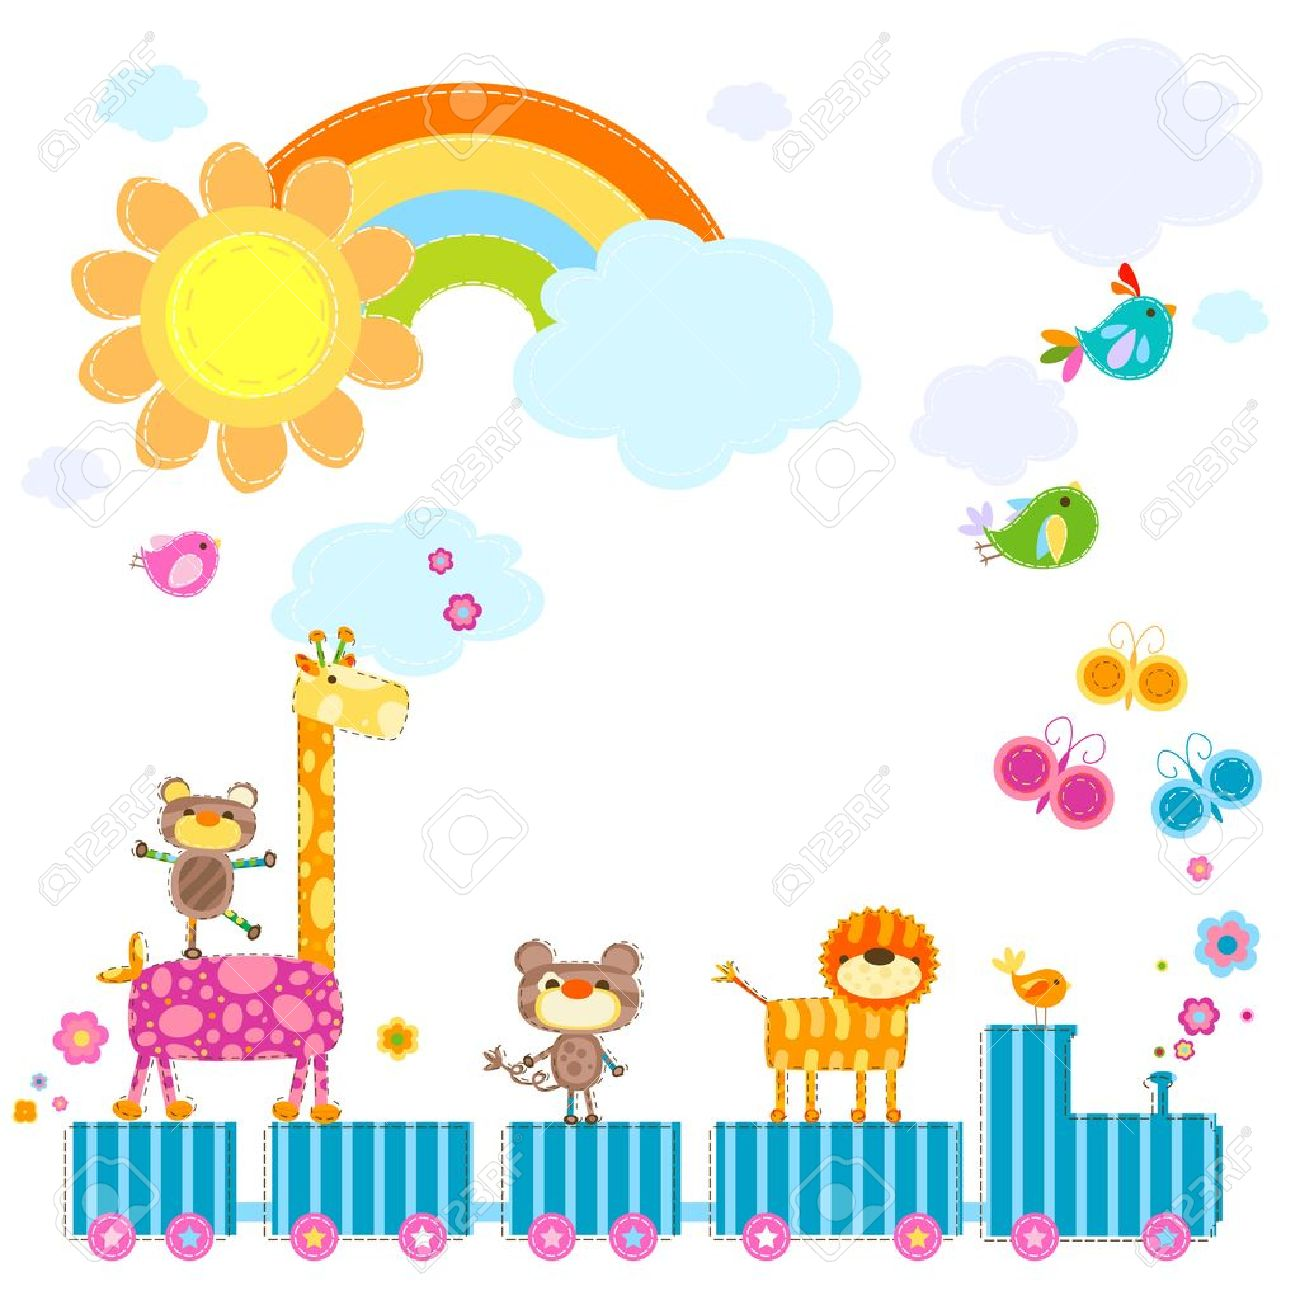 8,289 Rainbow Kids Stock Vector Illustration And Royalty Free.